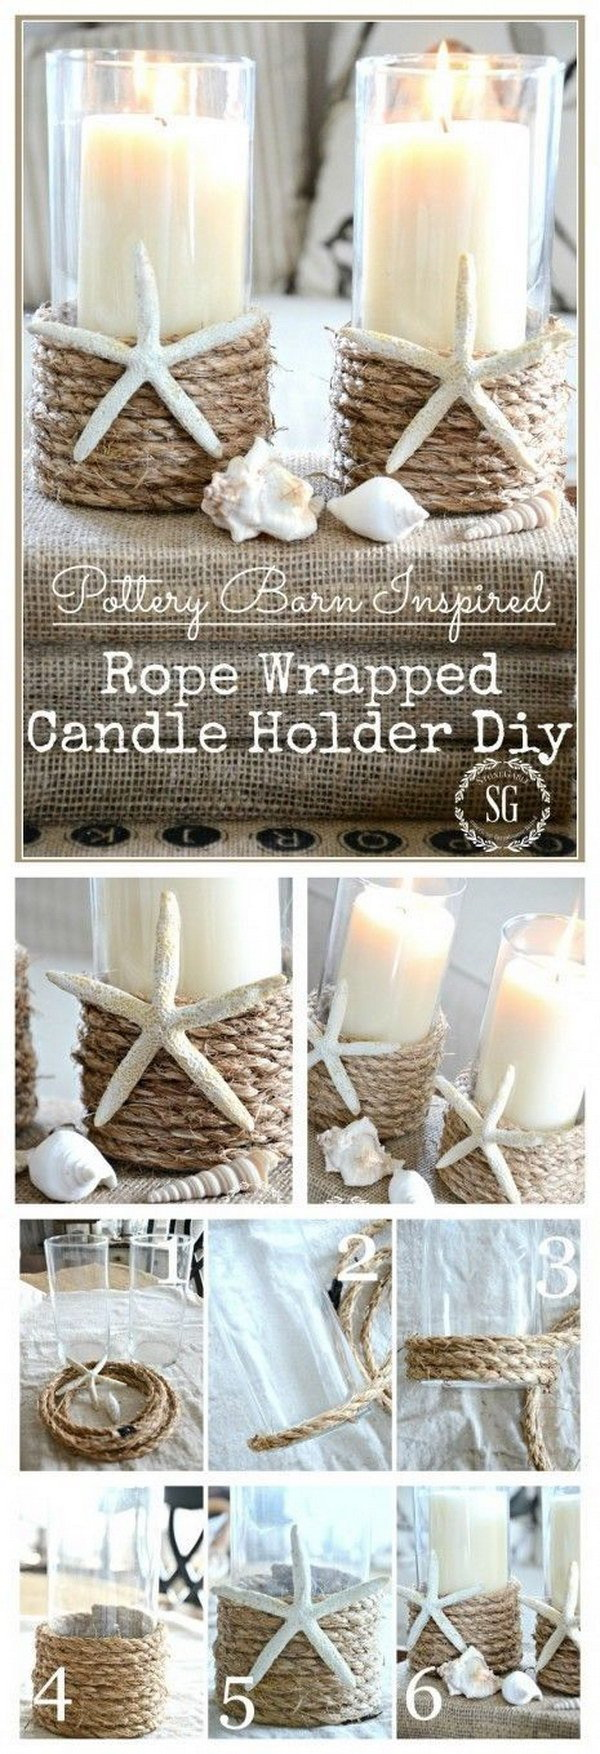 DIY Rope Wrapped Candle Holder. Wrap some rope around the simple dollar store glass candle holder and give it a nautical look. It definitly adds more elegance to your current decor!